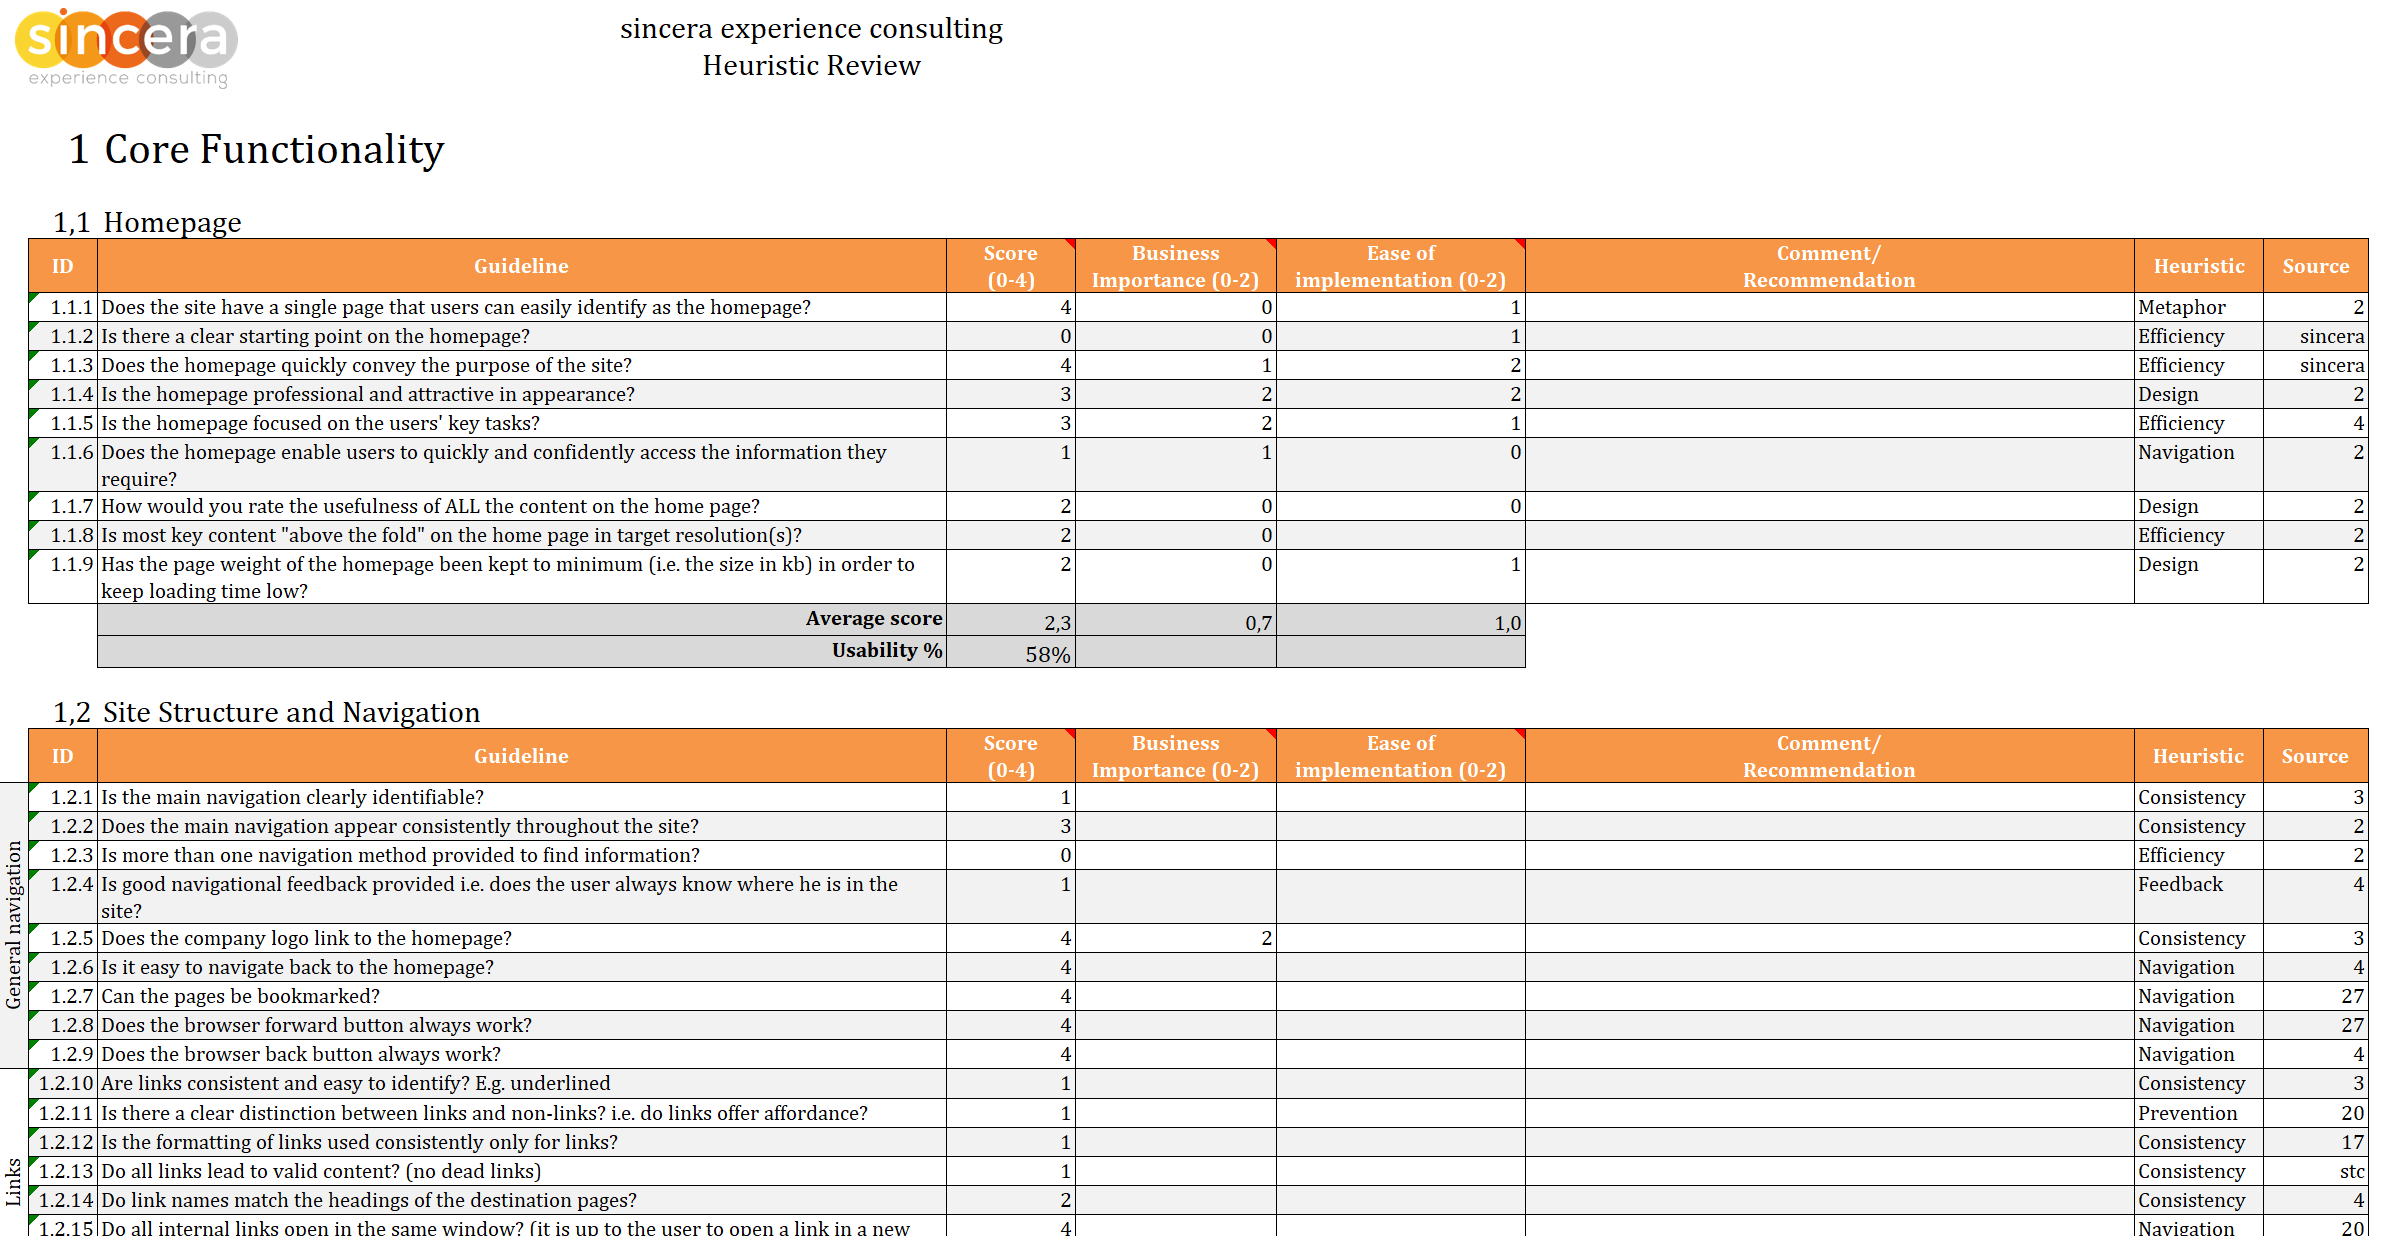 Heuristic Review Checklist